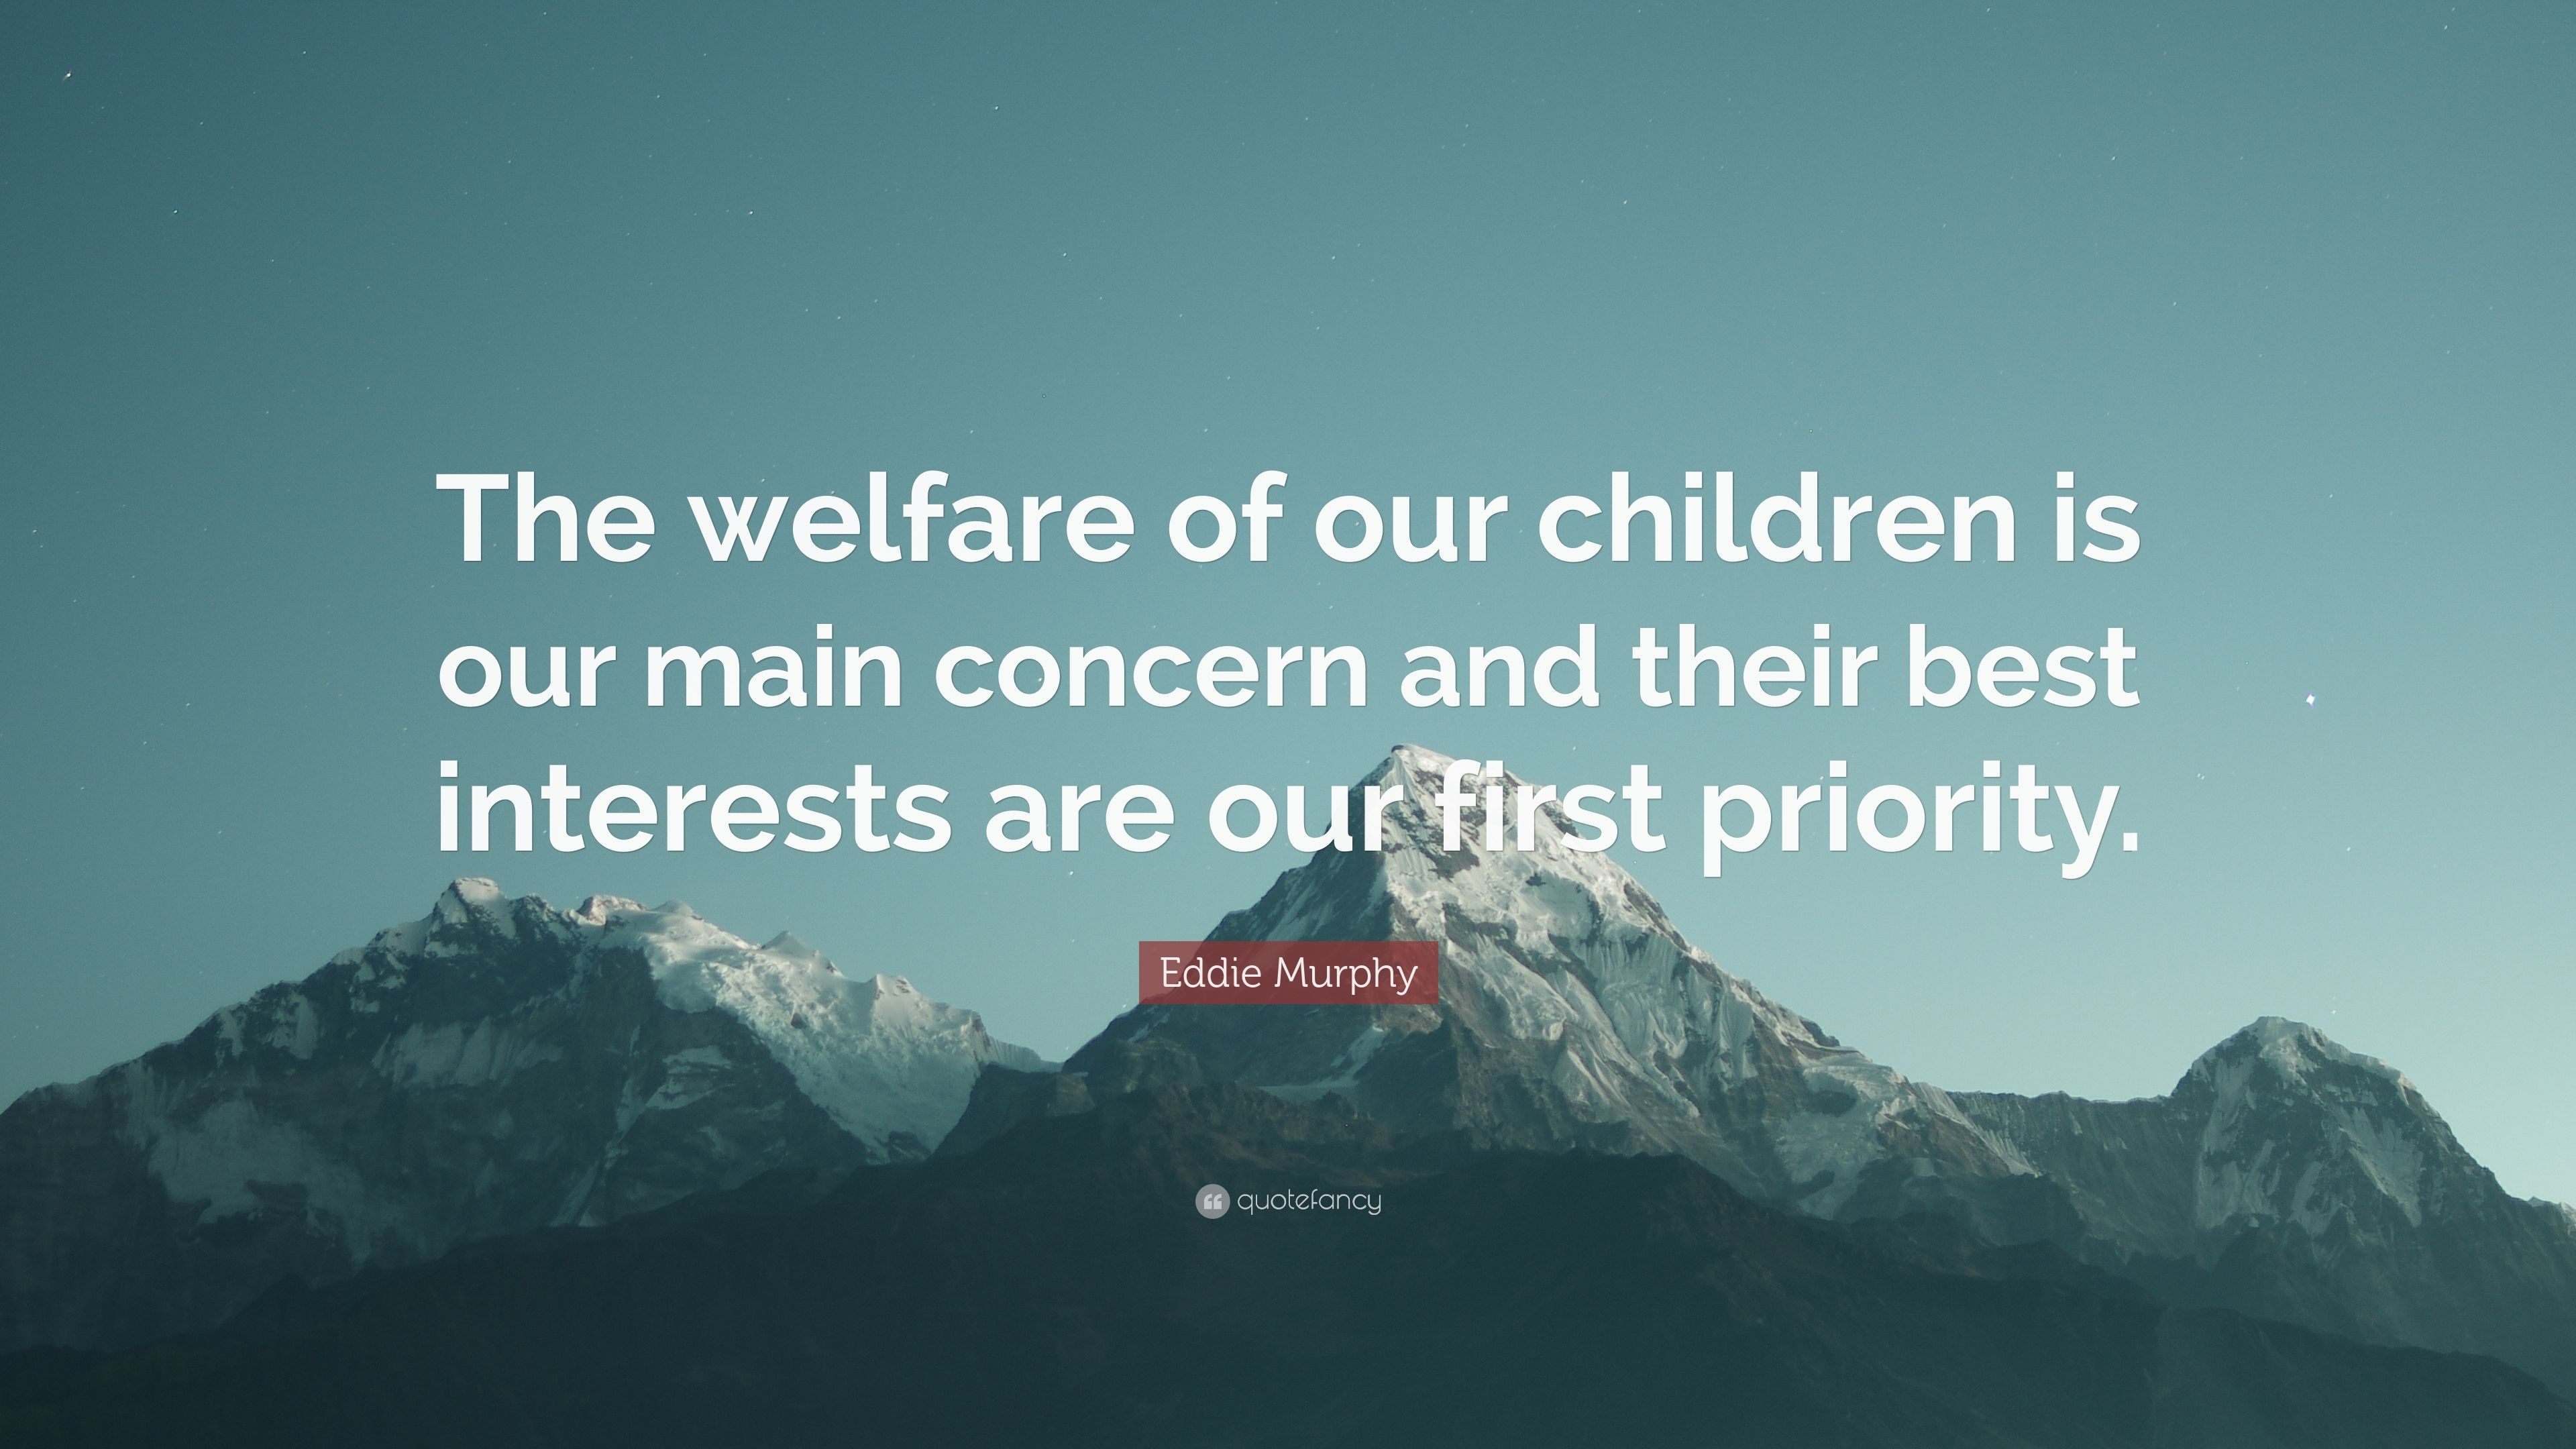 The welfare of a child is